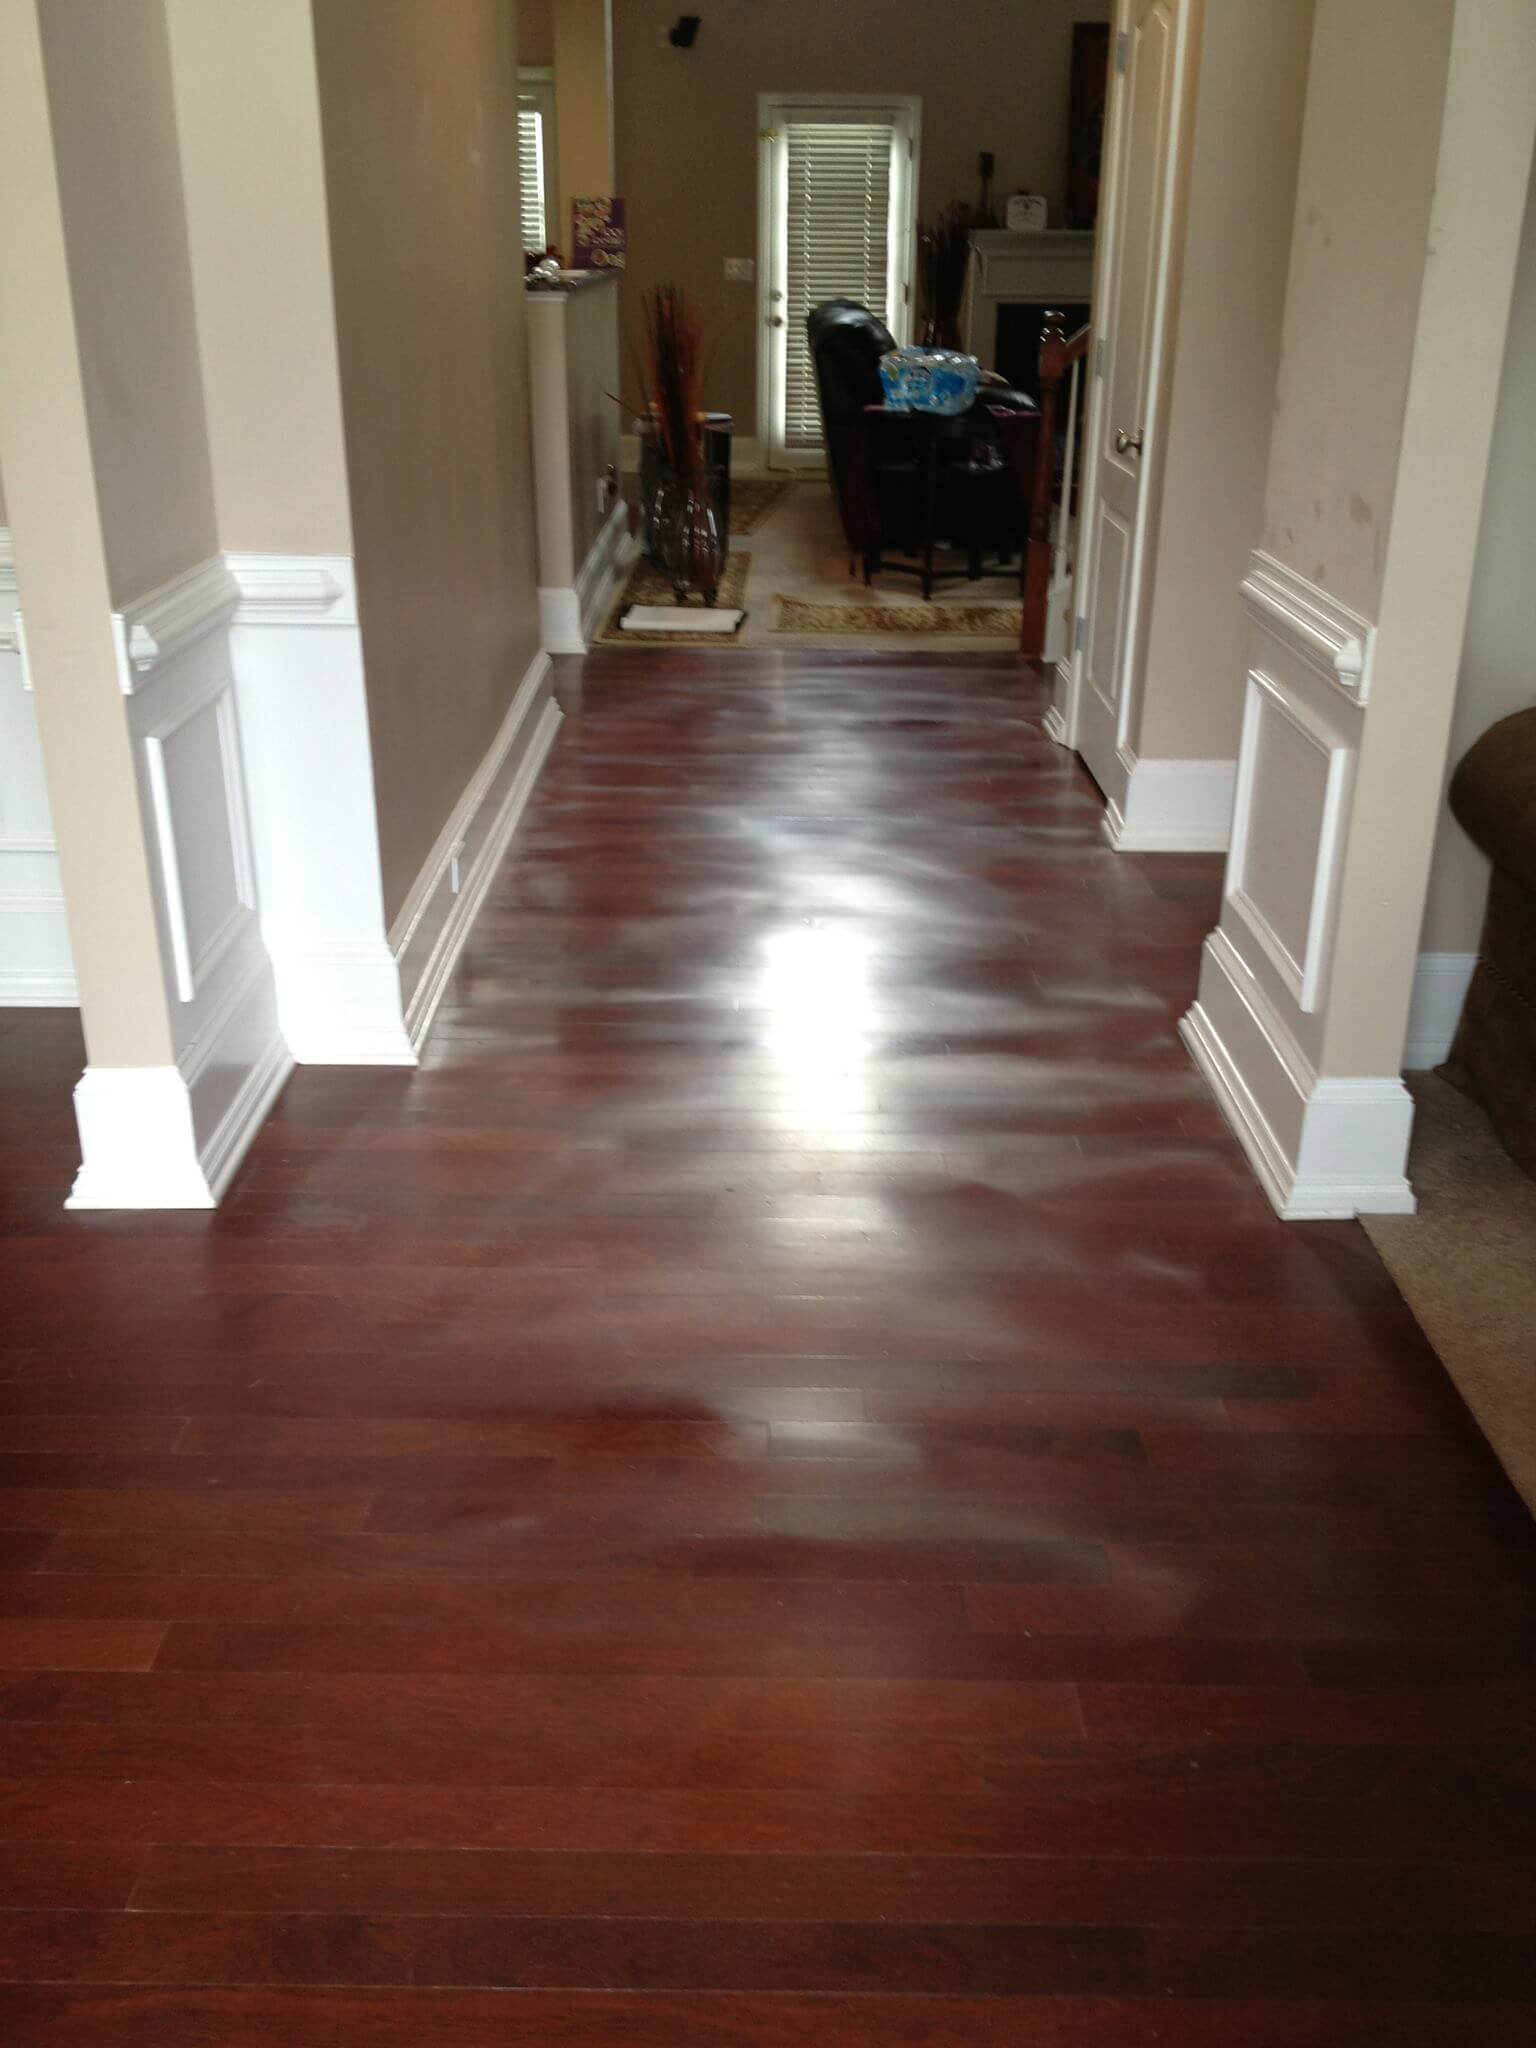 a warped hardwood floor showing serious signs of damage